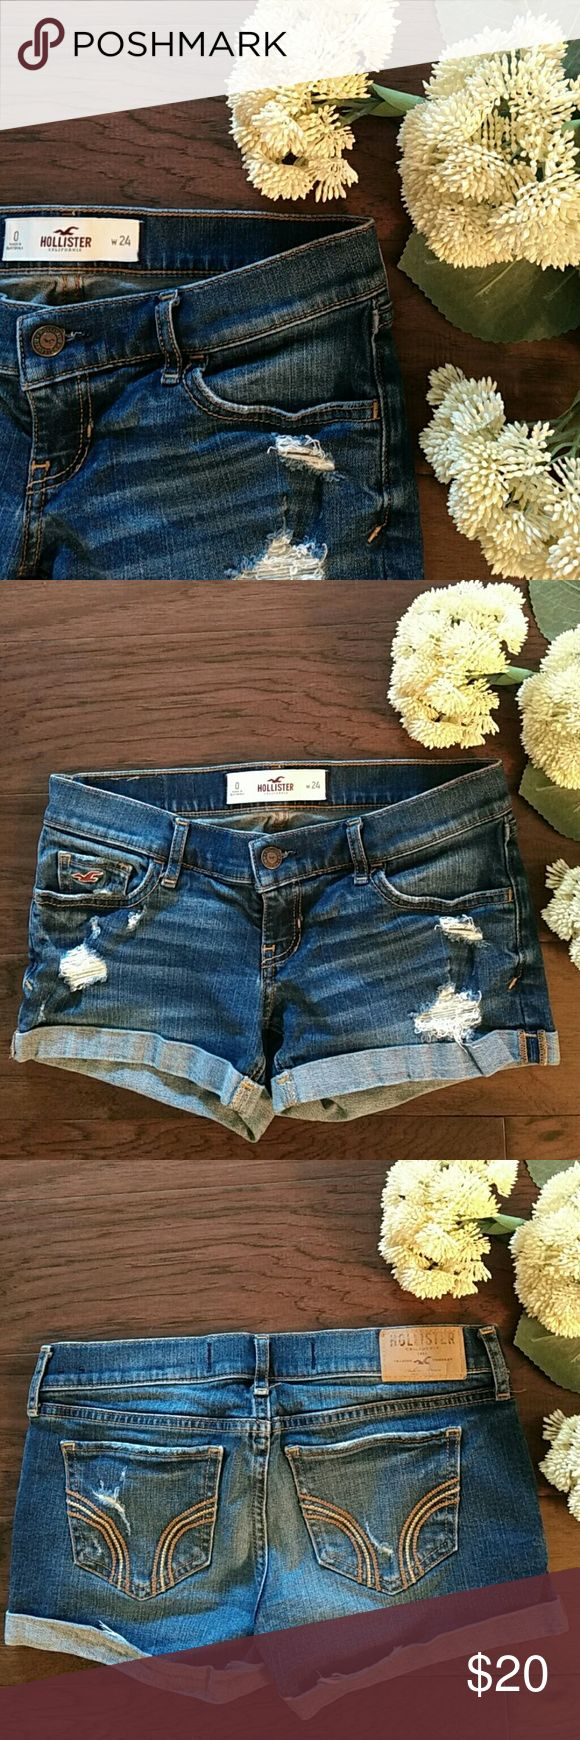 """Hollister distressed jean shorts In great condition. 3"""" inseam Hollister Shorts Jean Shorts"""